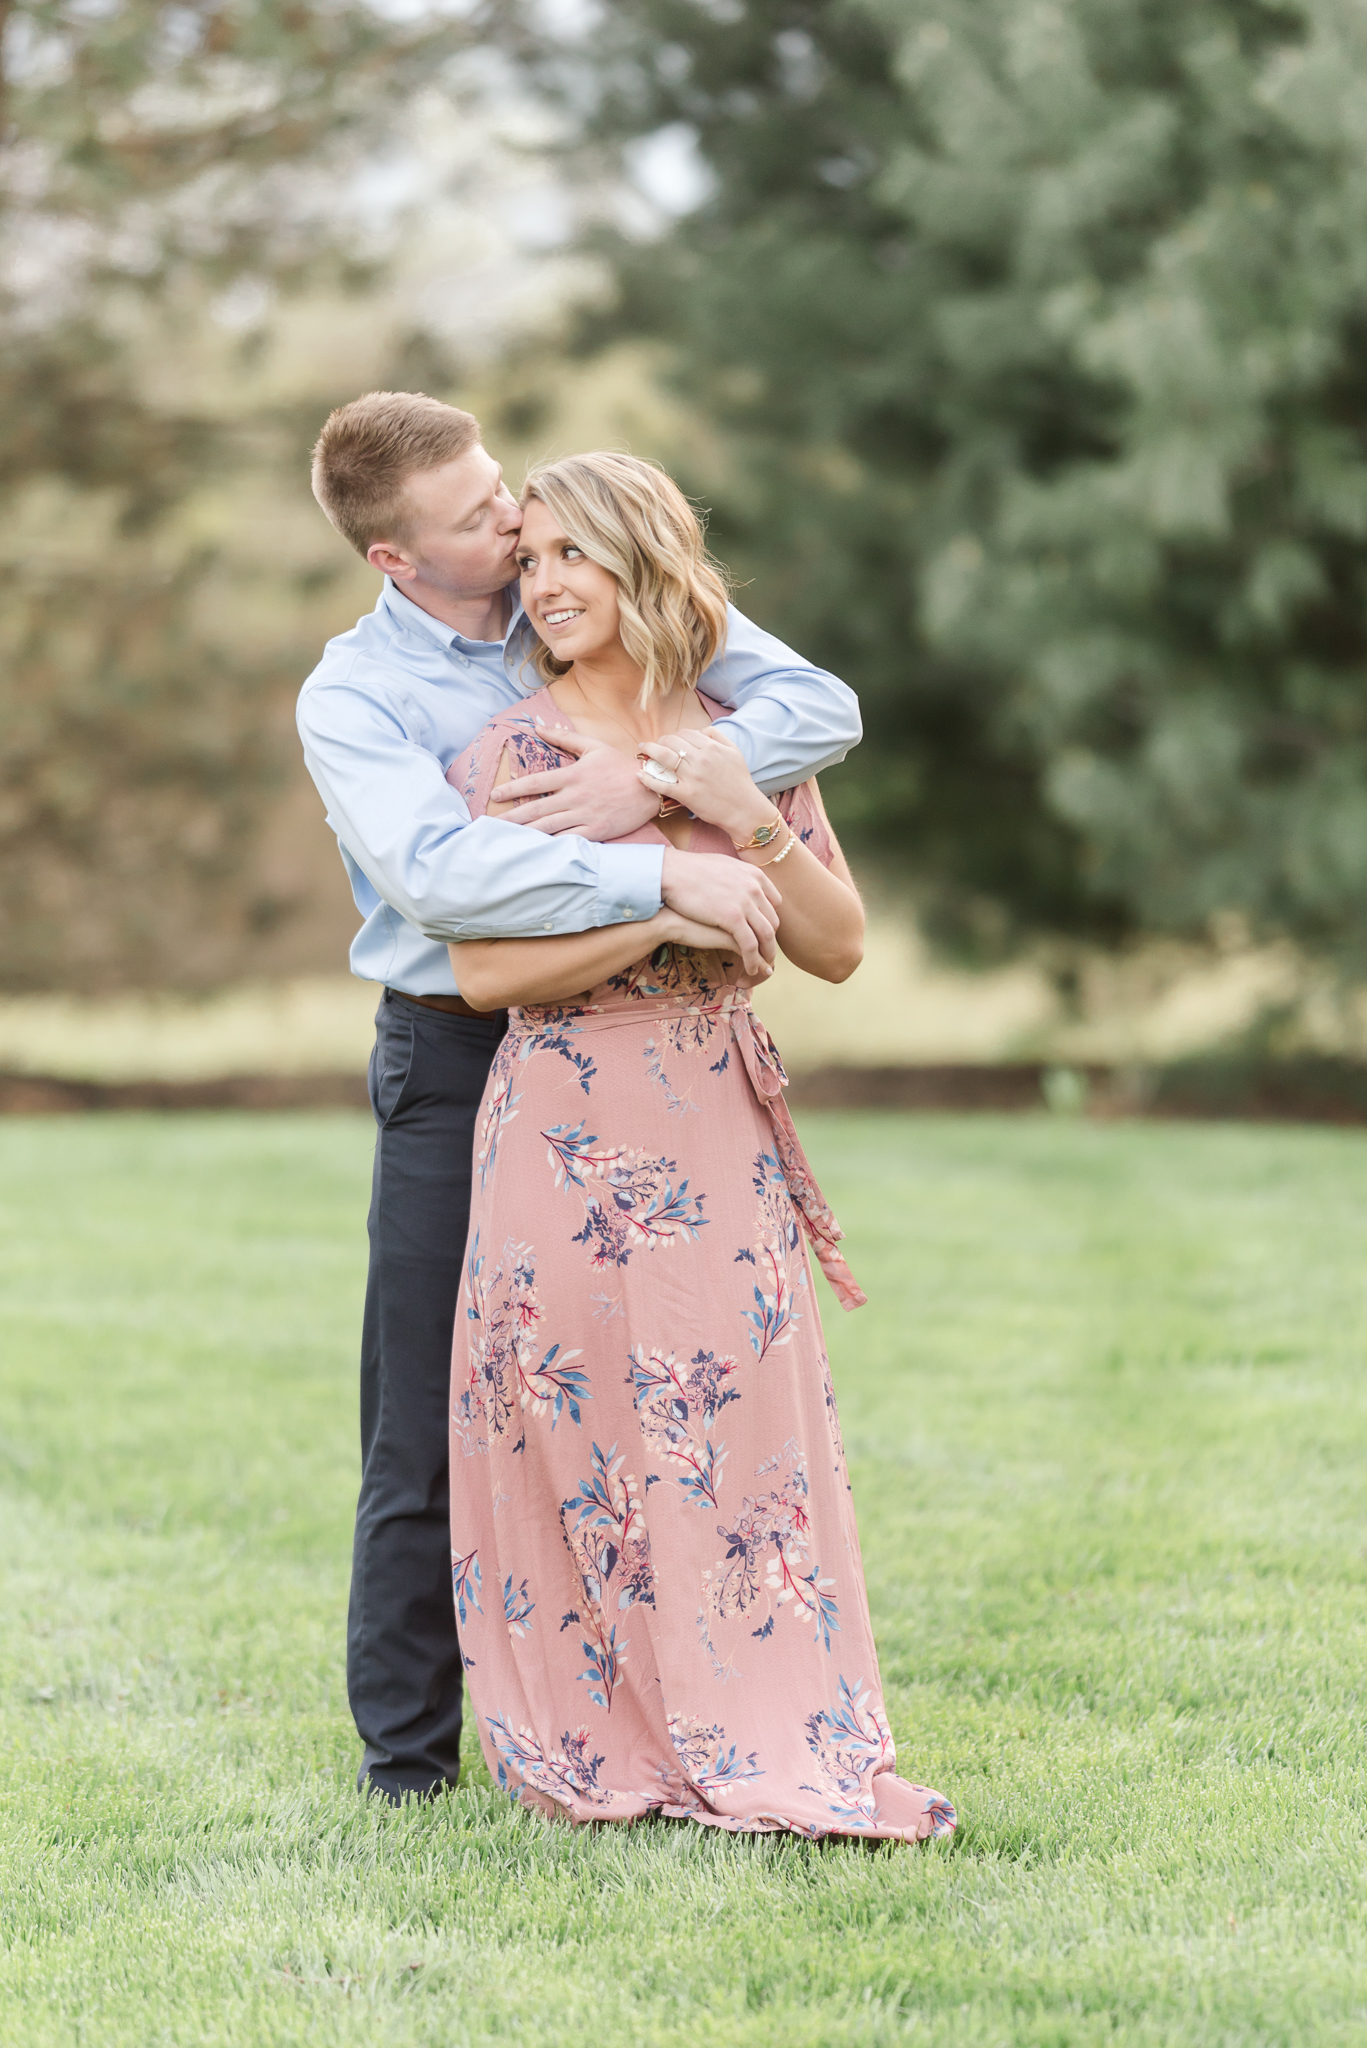 Richie Woods Nature Preserve and Mustard Seed Gardens Engagement Session Wedding Photos-58.jpg